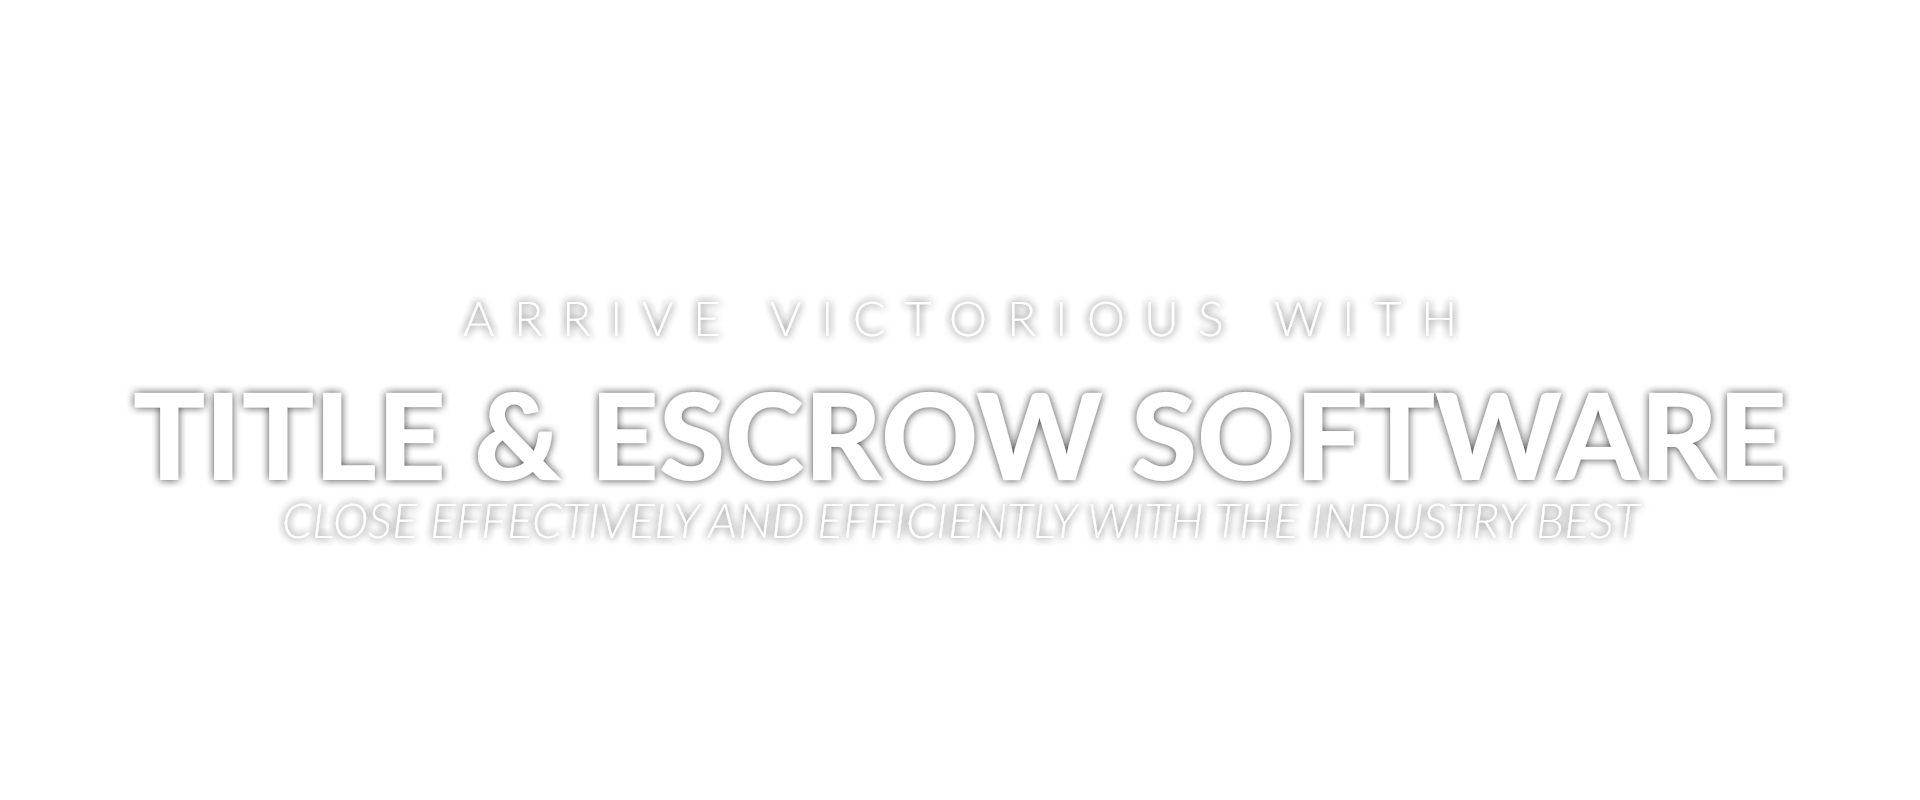 Title & Escrow Software